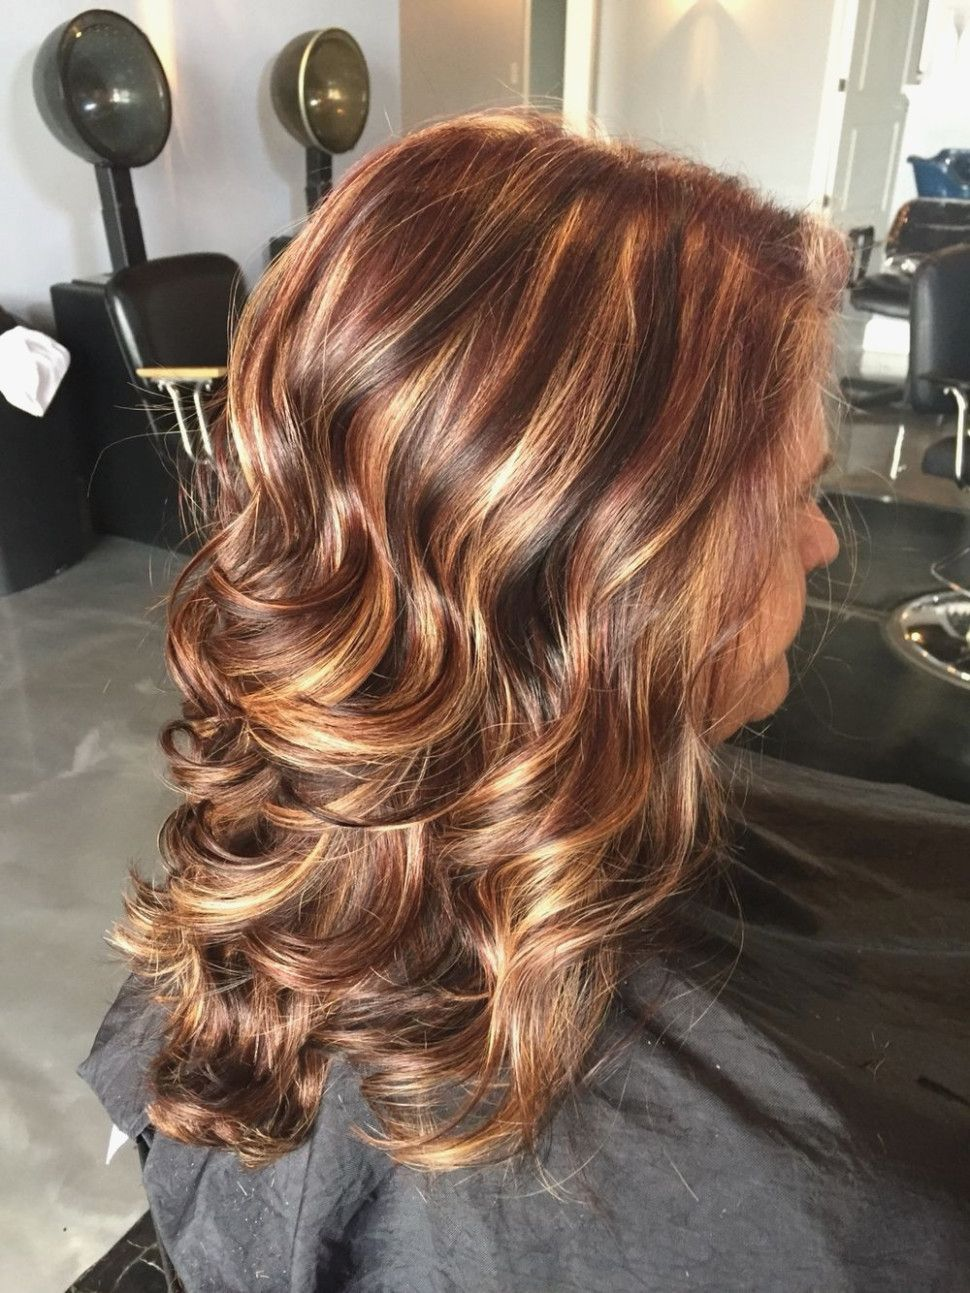 Image Result For Dark Brown Hair With Red And Caramel Low Lights Hair Highlights And Lowlights Blonde Hair With Highlights Brown Hair With Lowlights